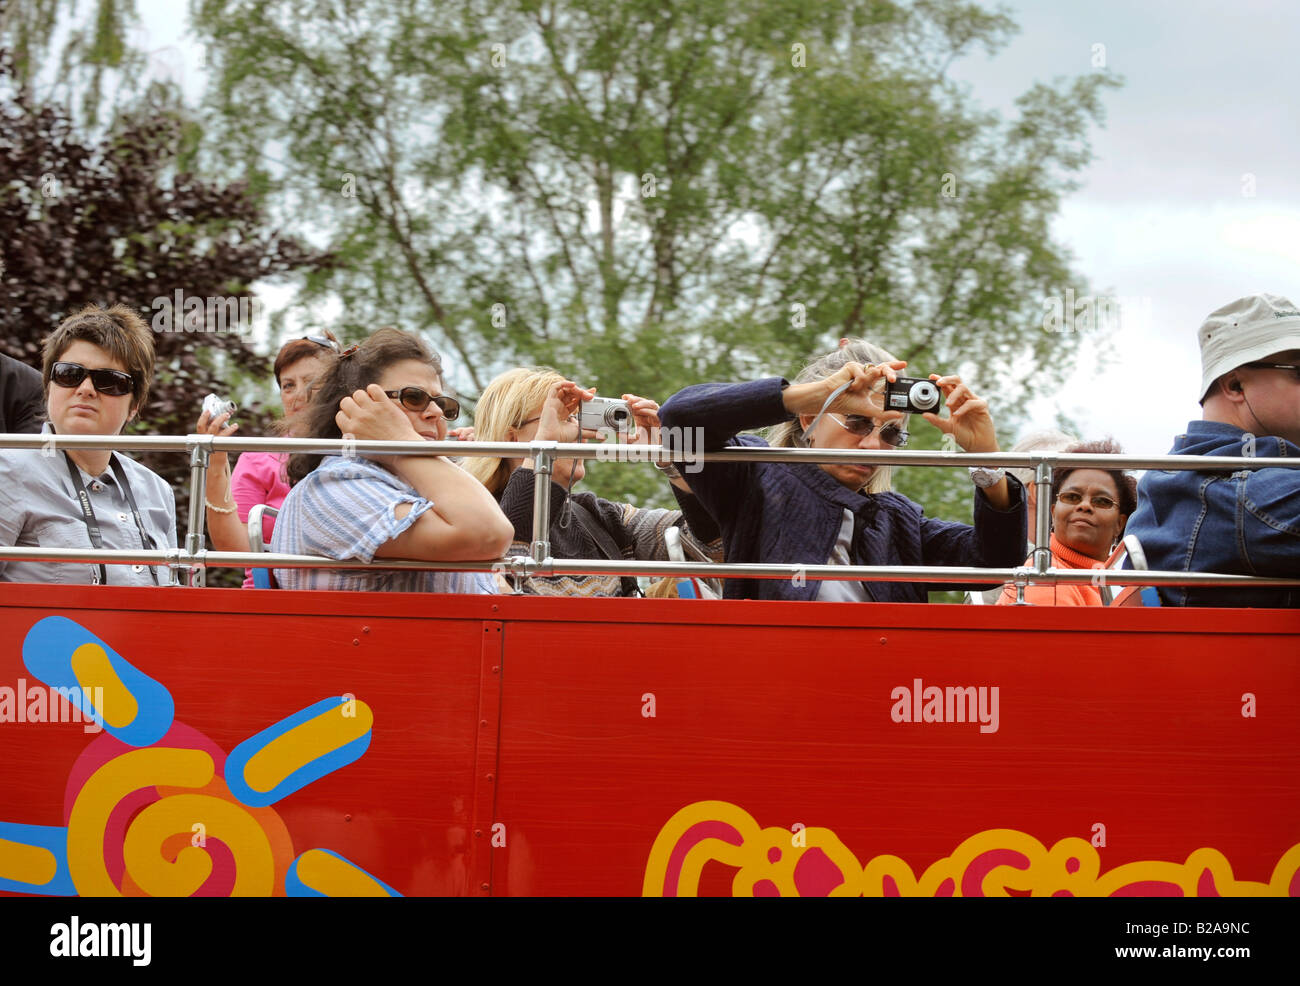 Sightseers on a City Sightseeing Tours open-top bus visiting Stratford-upon-Avon. Armed with point and shoot cameras. - Stock Image